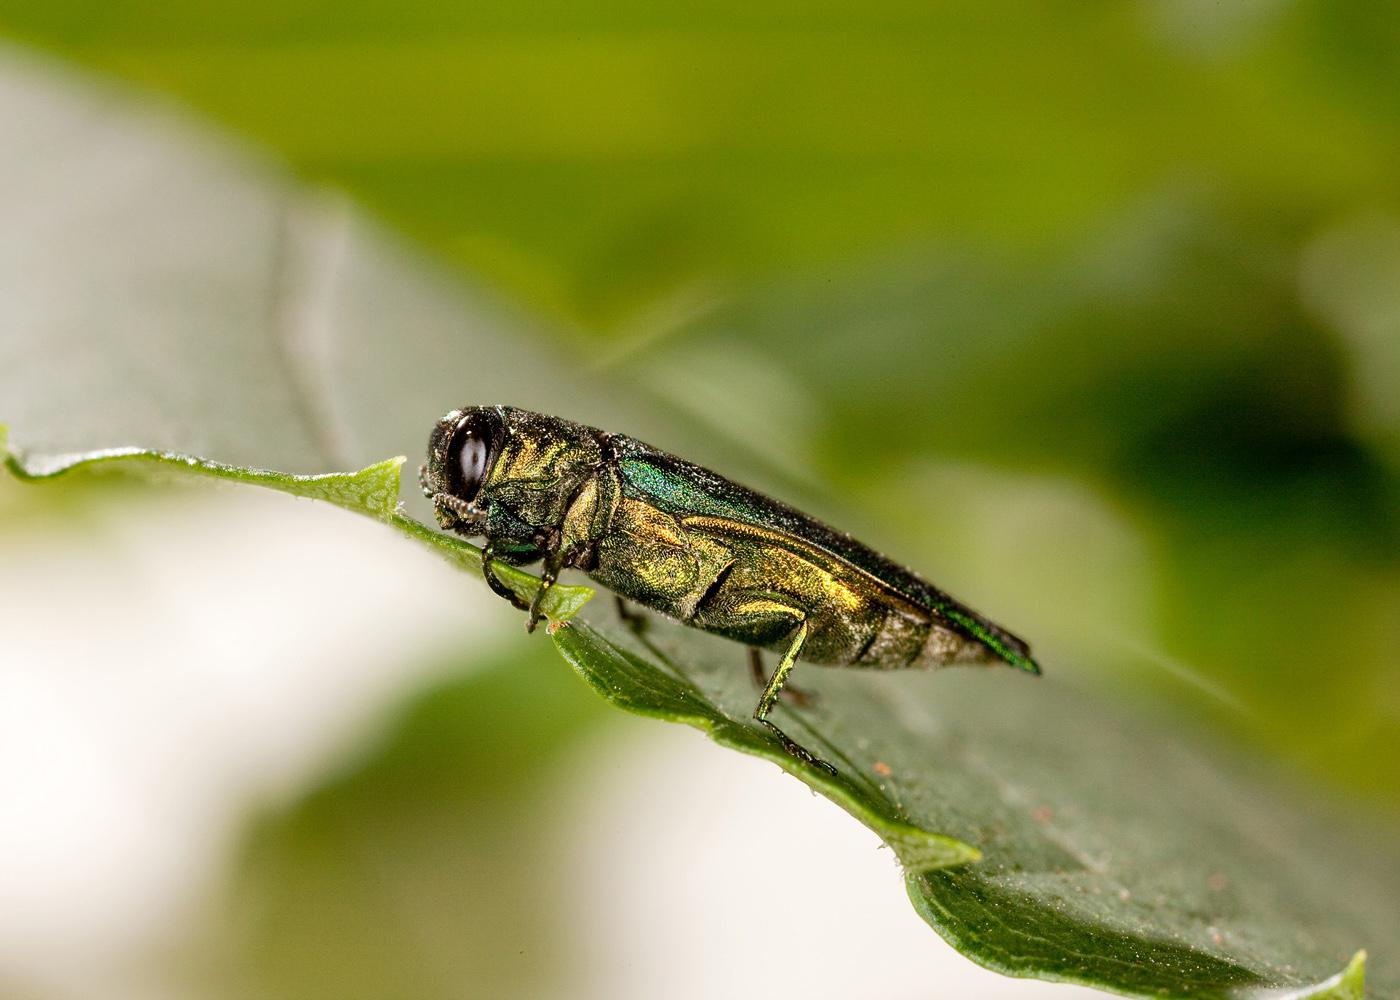 The emerald ash borer is metallic green in color and about 1/2 inch long. The beetle's larva tunnels under the bark and disrupts the ash tree's absorption of food and water, eventually starving and killing it. (Photo by USDA ARS/Stephen Ausmus)